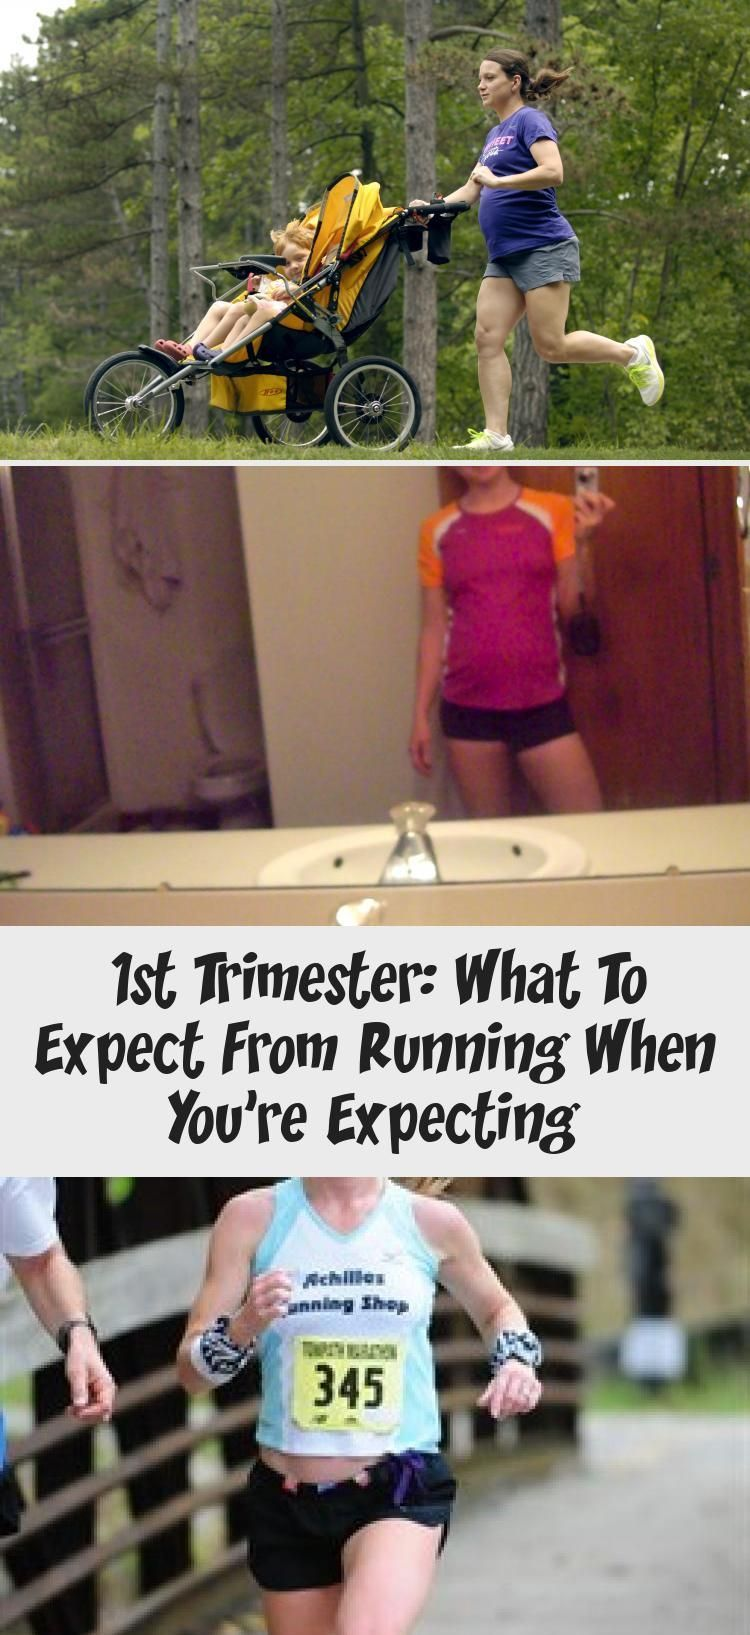 1st trimester what you can expect from running when you expect it  salty running pregnancy1sttrimesterYoga pregnancy1sttrimesterSymptome